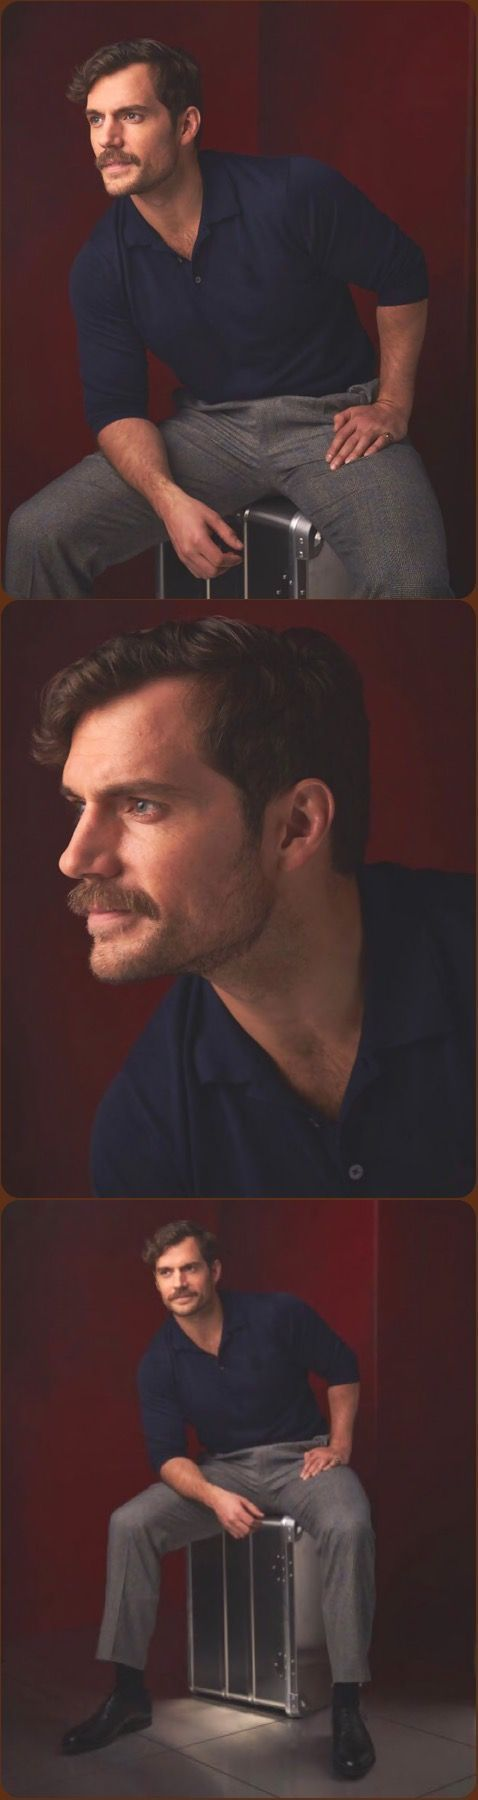 Henry Cavill, Men's Fashion, Actor, Male Model, Good Looking, Beautiful Man, Guy, Handsome, Cute, Hot, Sexy, Eye Candy, Muscle, Hunk, Hairy Chest, Abs, Six Pack, Fitness (Superman, Man of Steel, Justice League) ヘンリー・カヴィル 俳優 男性モデル フィットネス (スーパーマン マン・オブ・スティール ジャスティス・リーグ) #MuscleHunks #sixpackabs